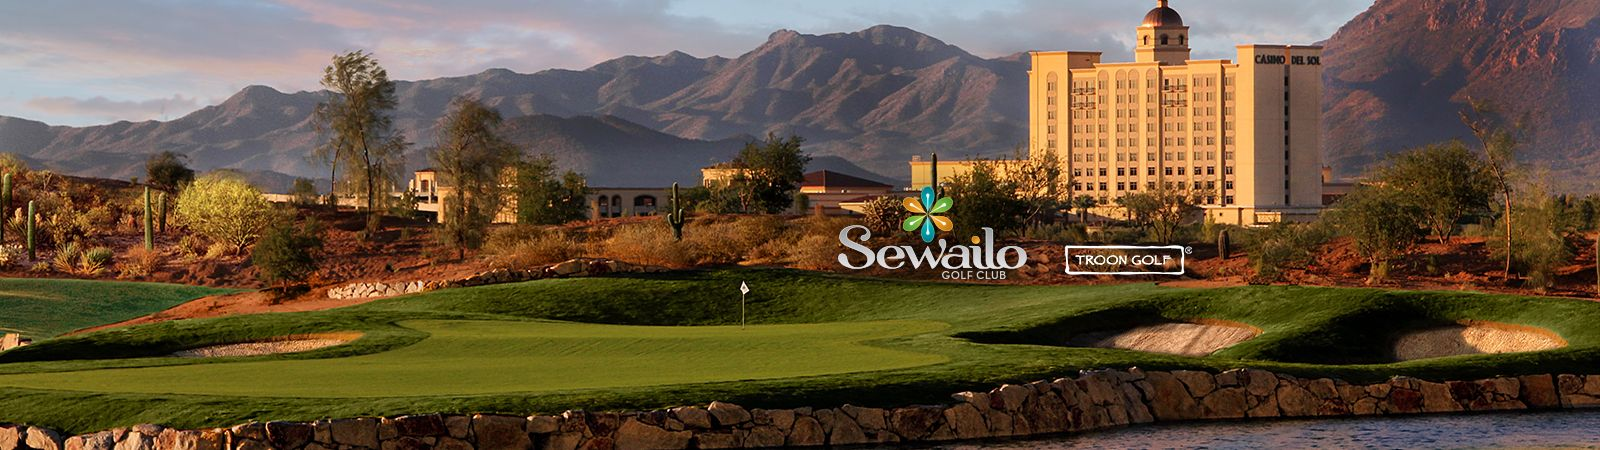 Sewailo Golf Club Tucson AZ